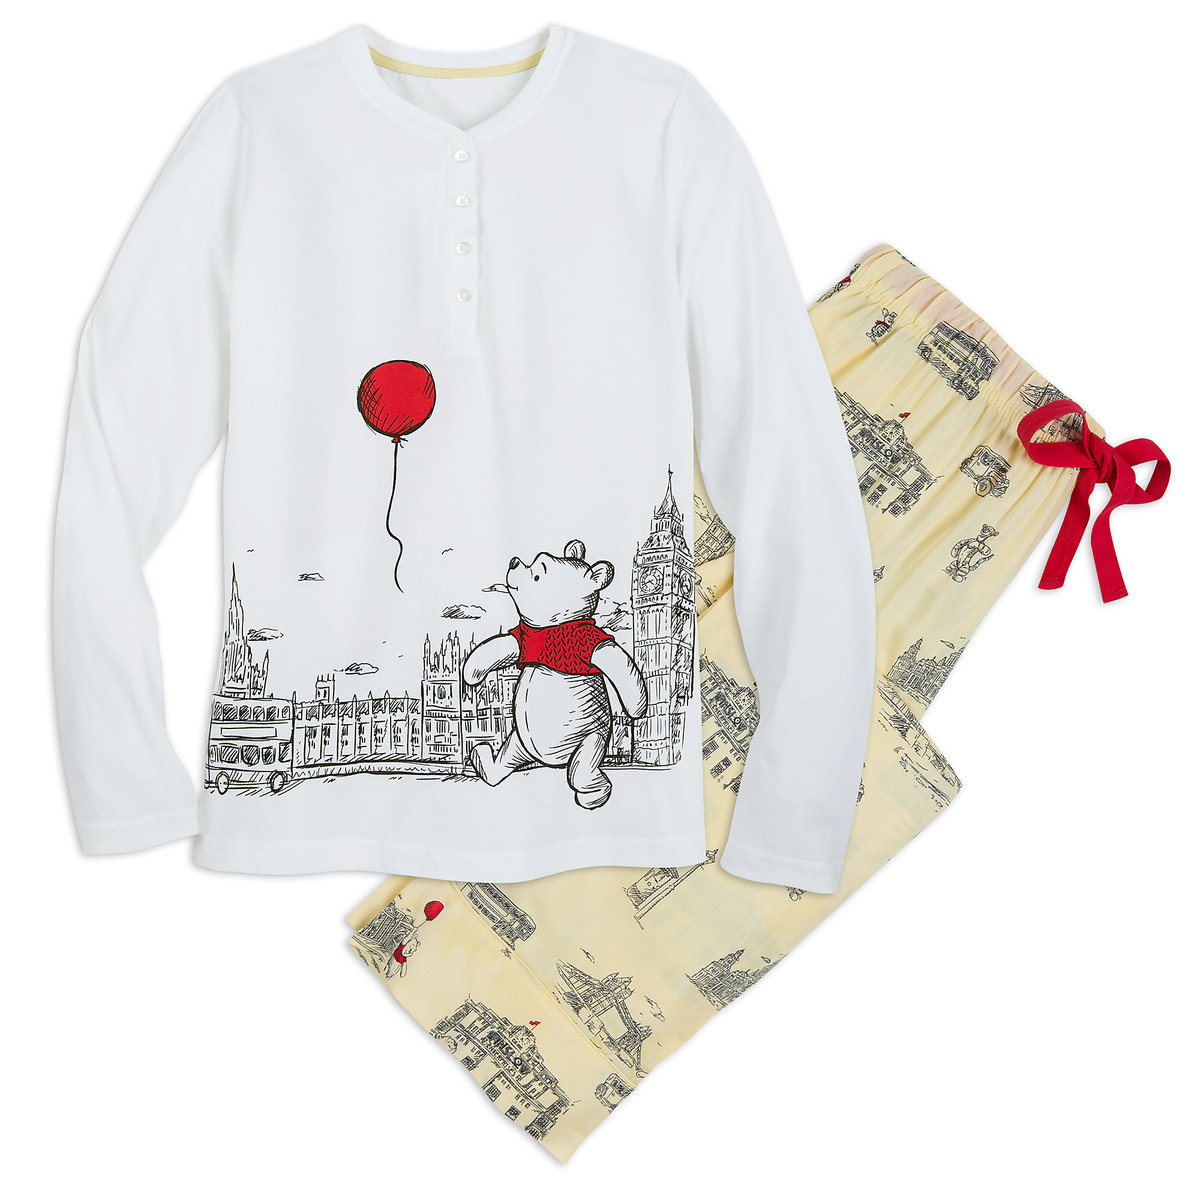 58f73b73ce80 Product Image of Winnie the Pooh Pajamas for Women - Christopher Robin   1